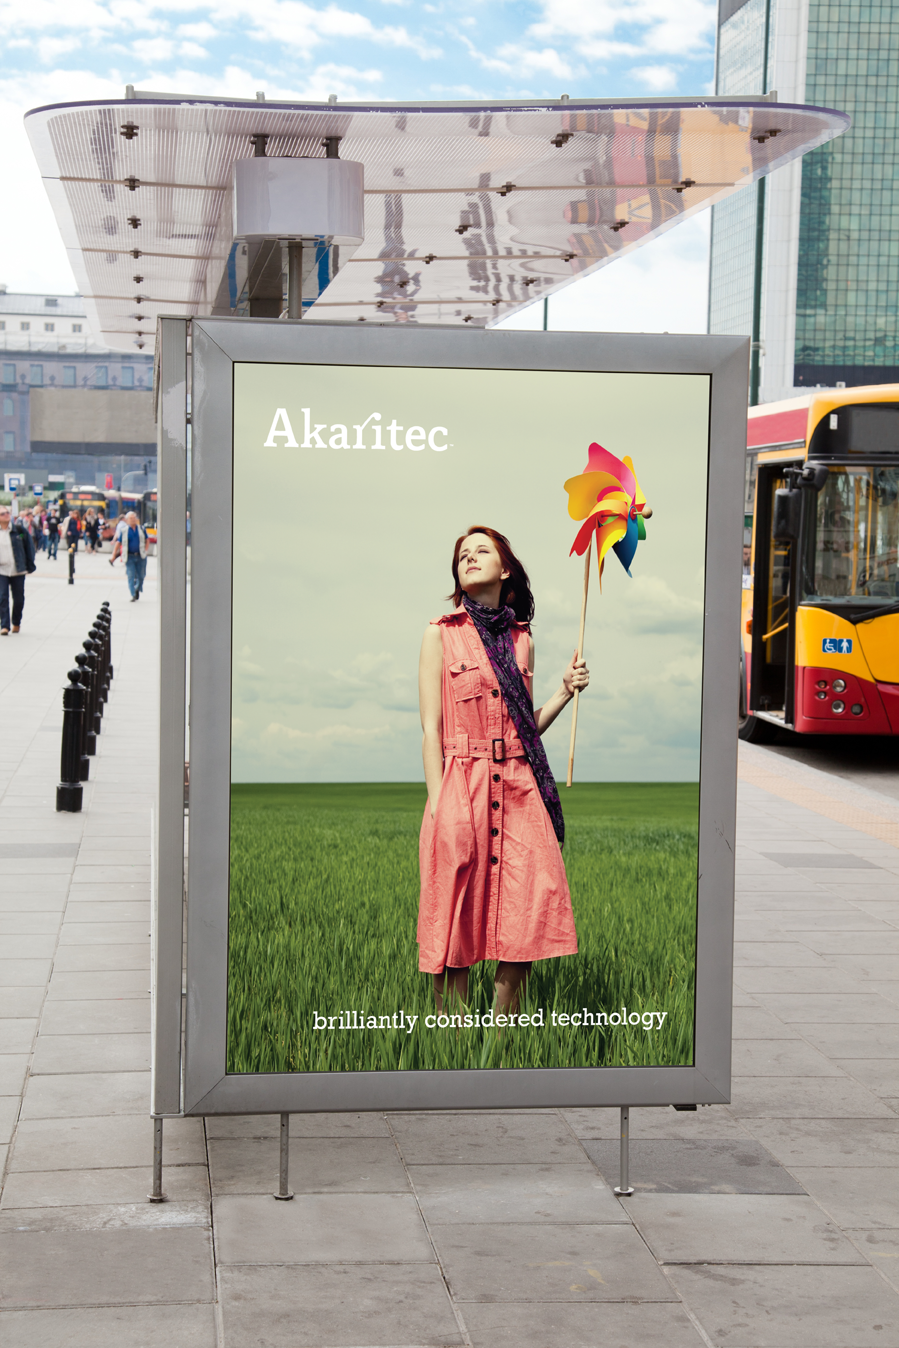 Akaritec Billboard Poster by Theory Unit